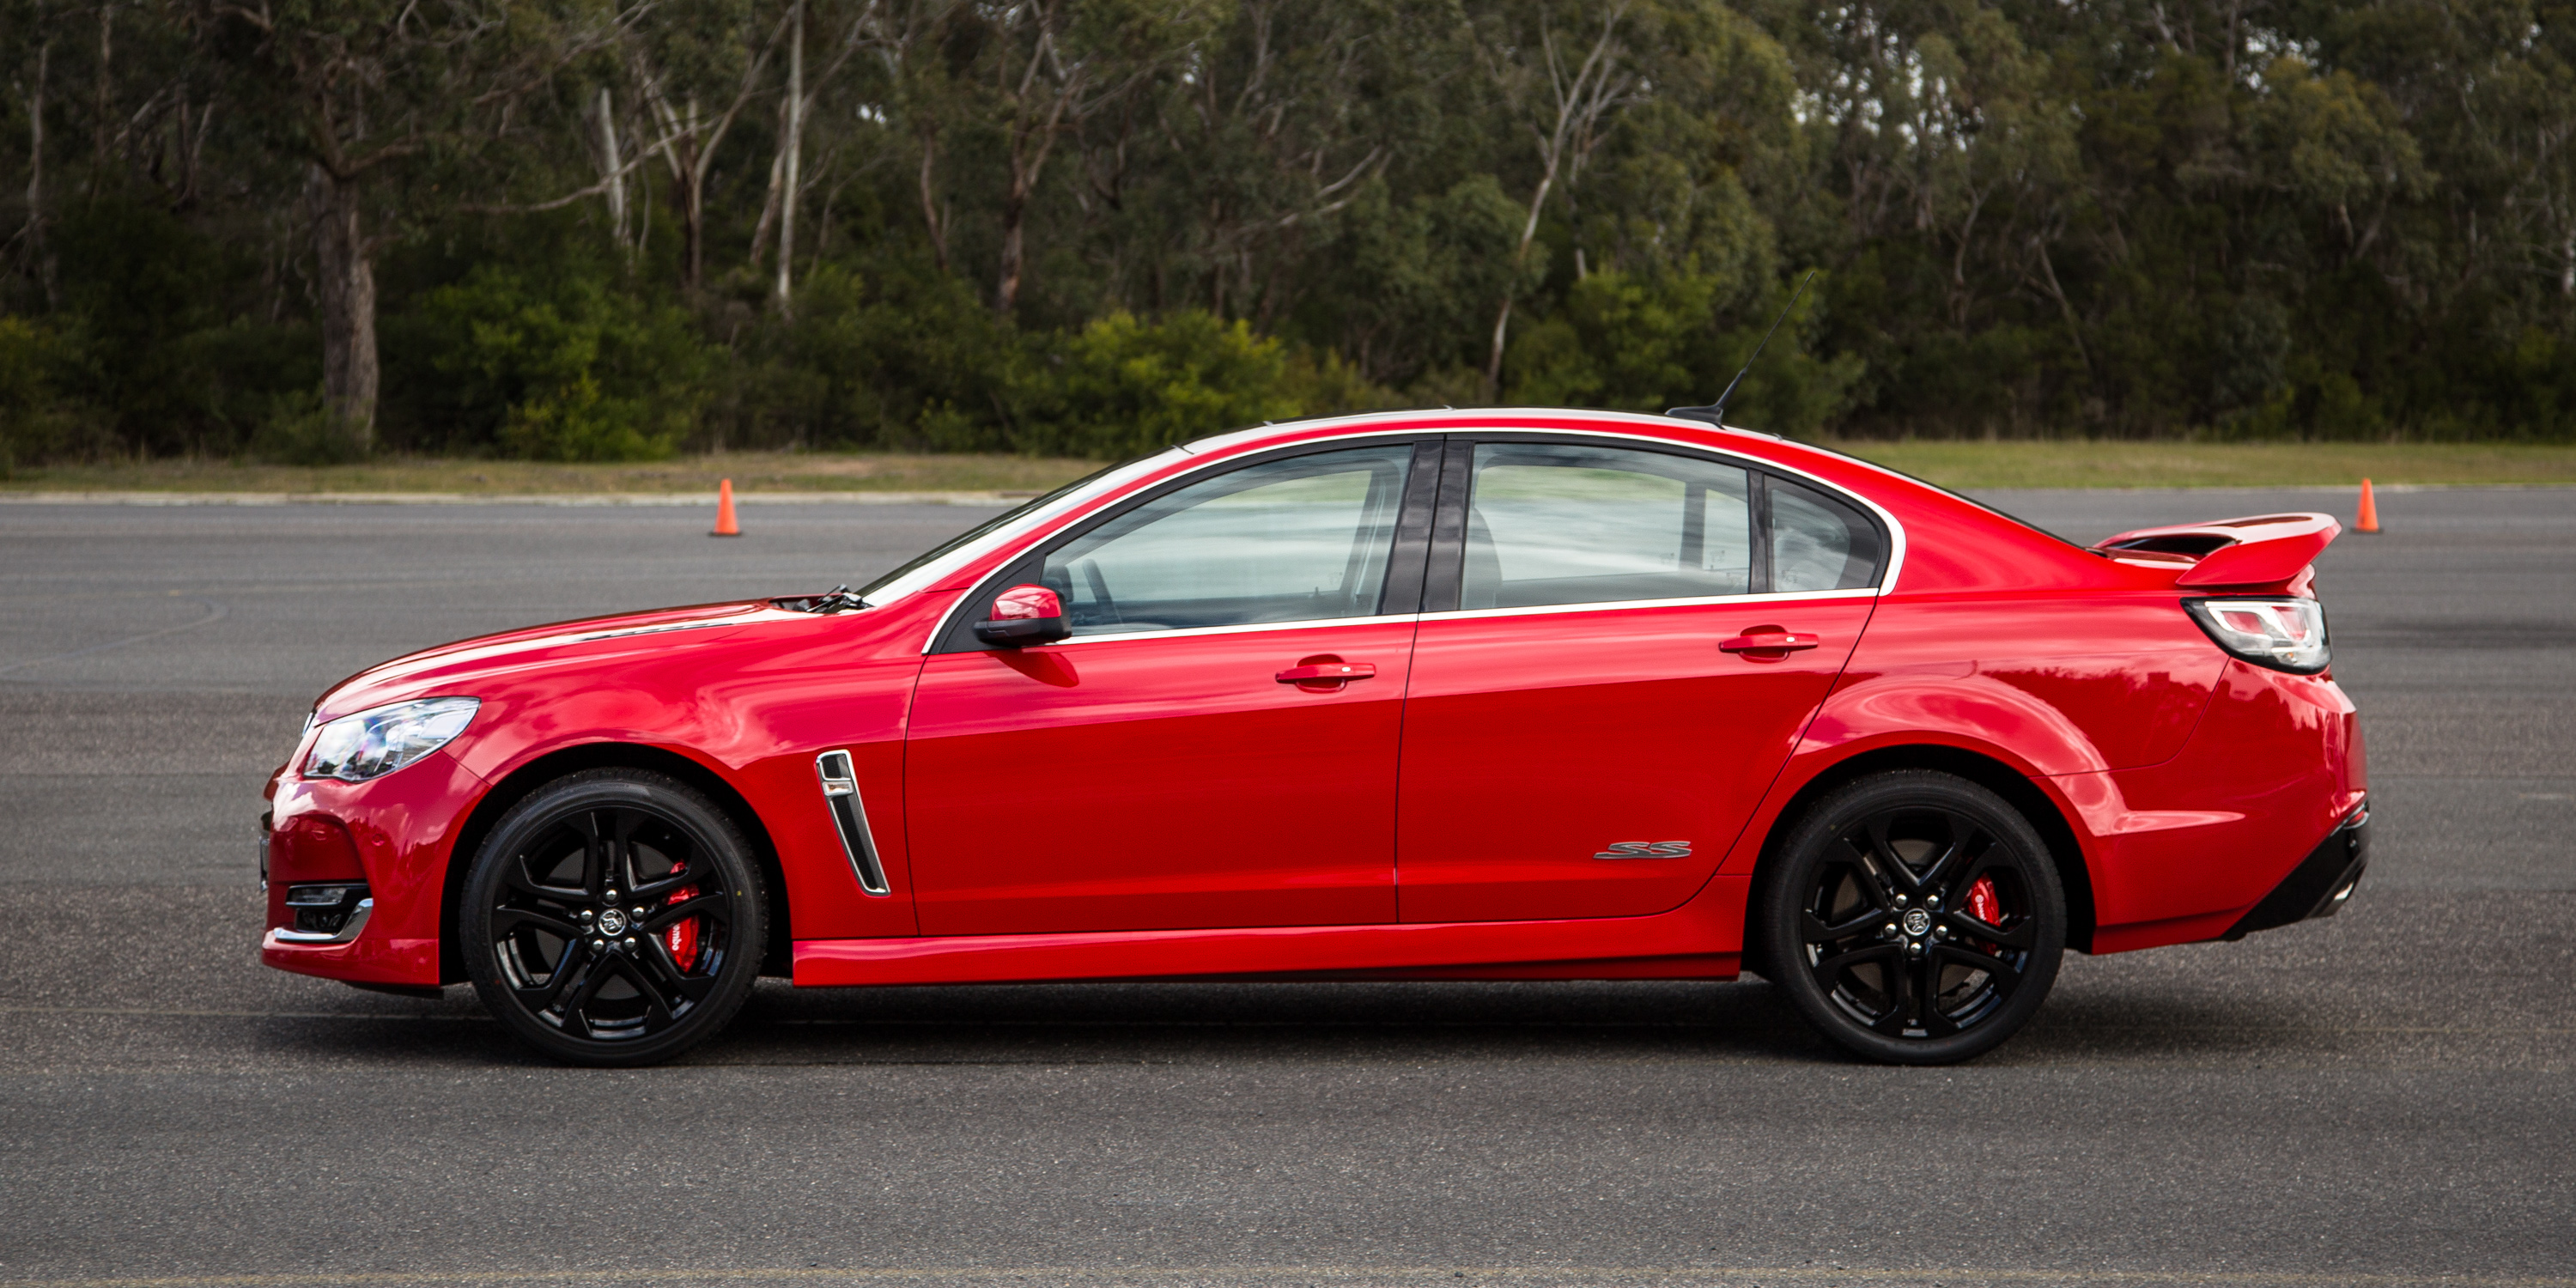 2016 Holden Commodore VFII Review - Photos